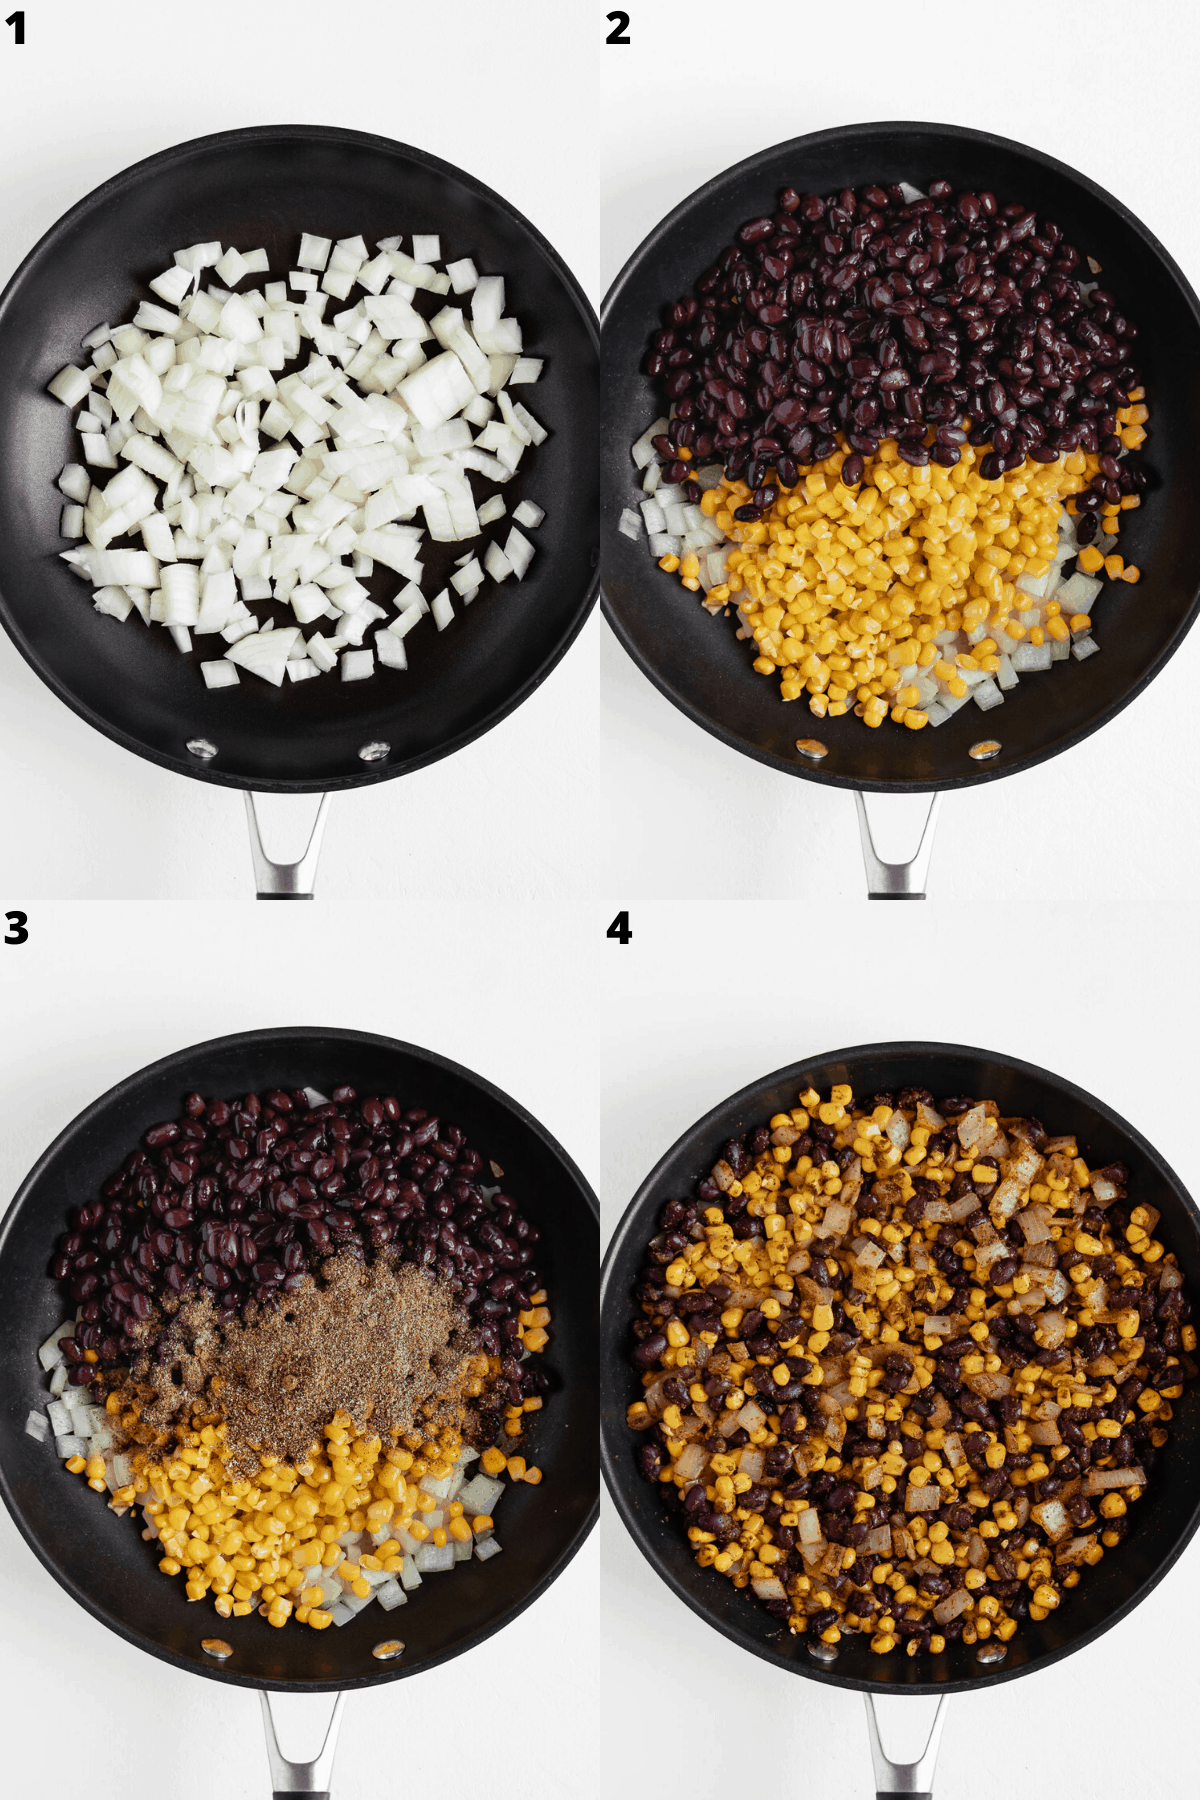 a four step collage cooking diced onions, black beans, corn, and spices on a black skillet